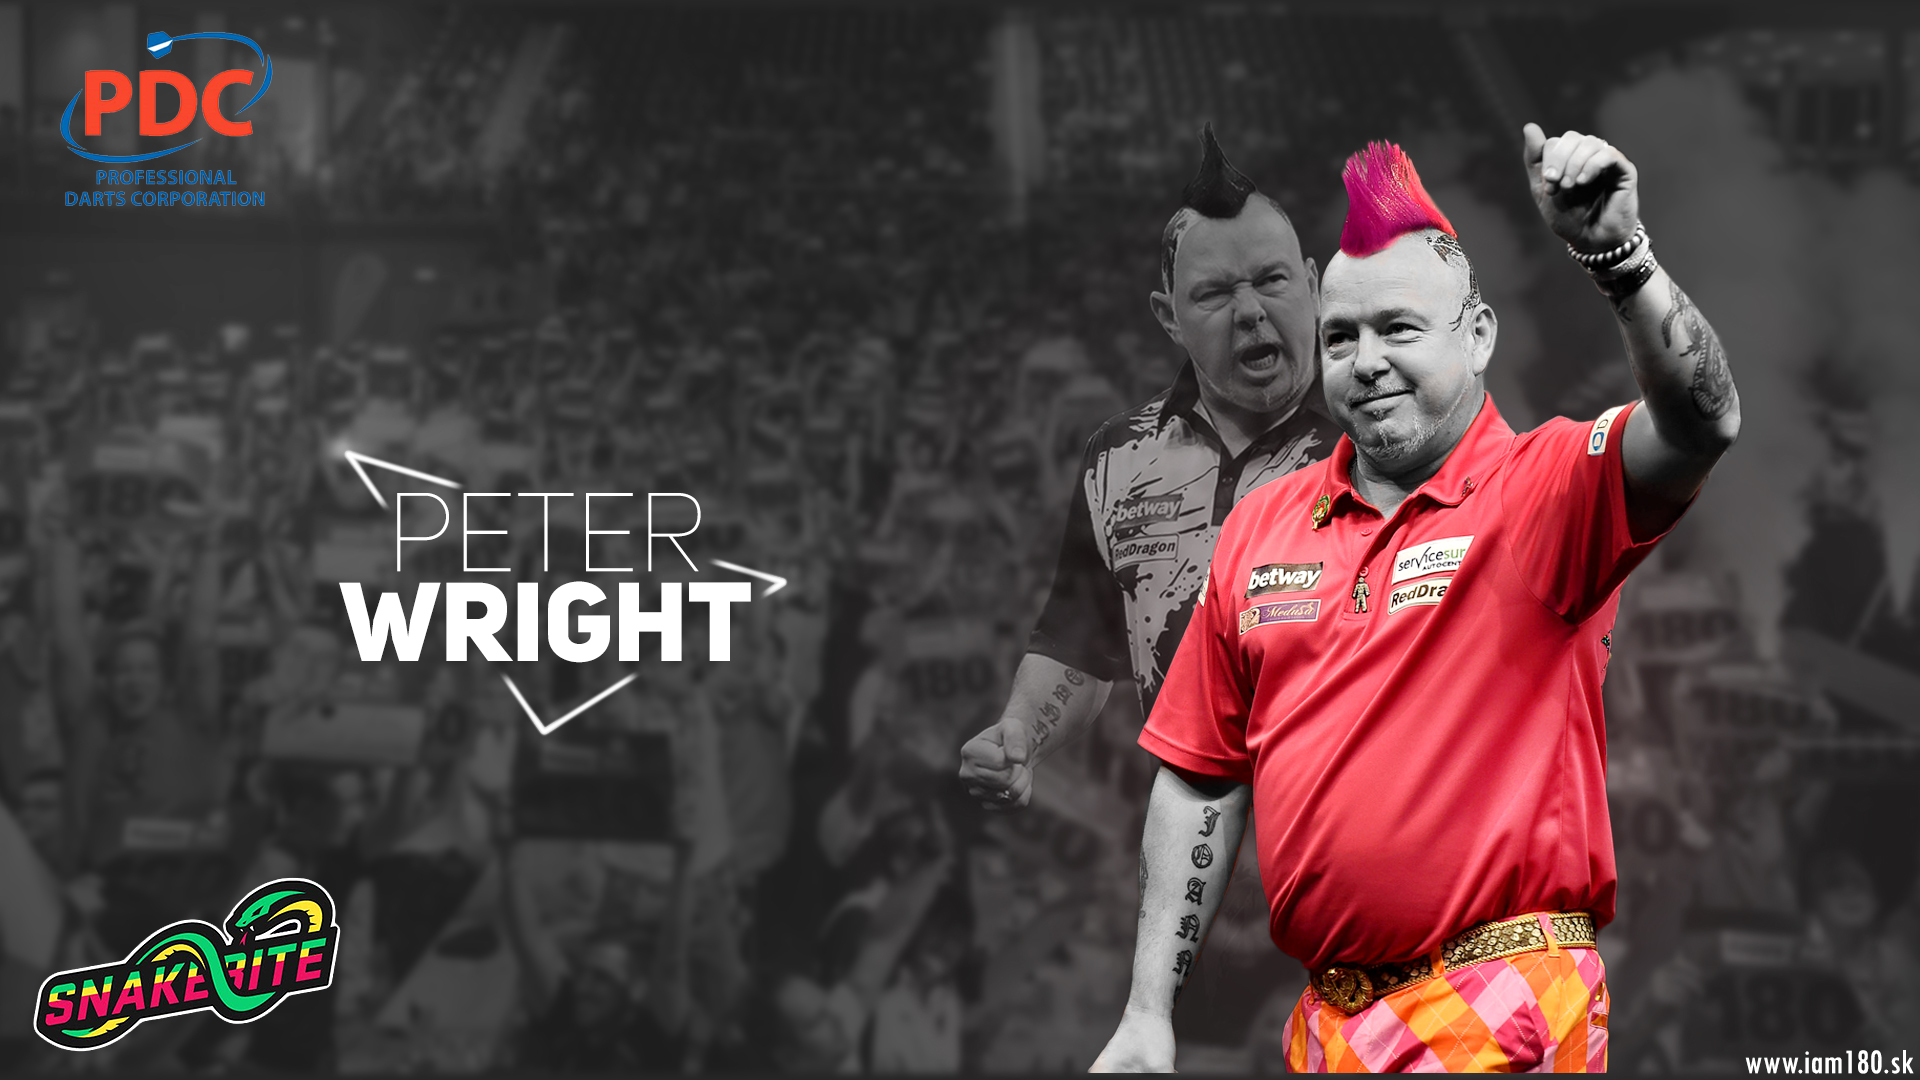 Peter Wright Darts Wallpaper